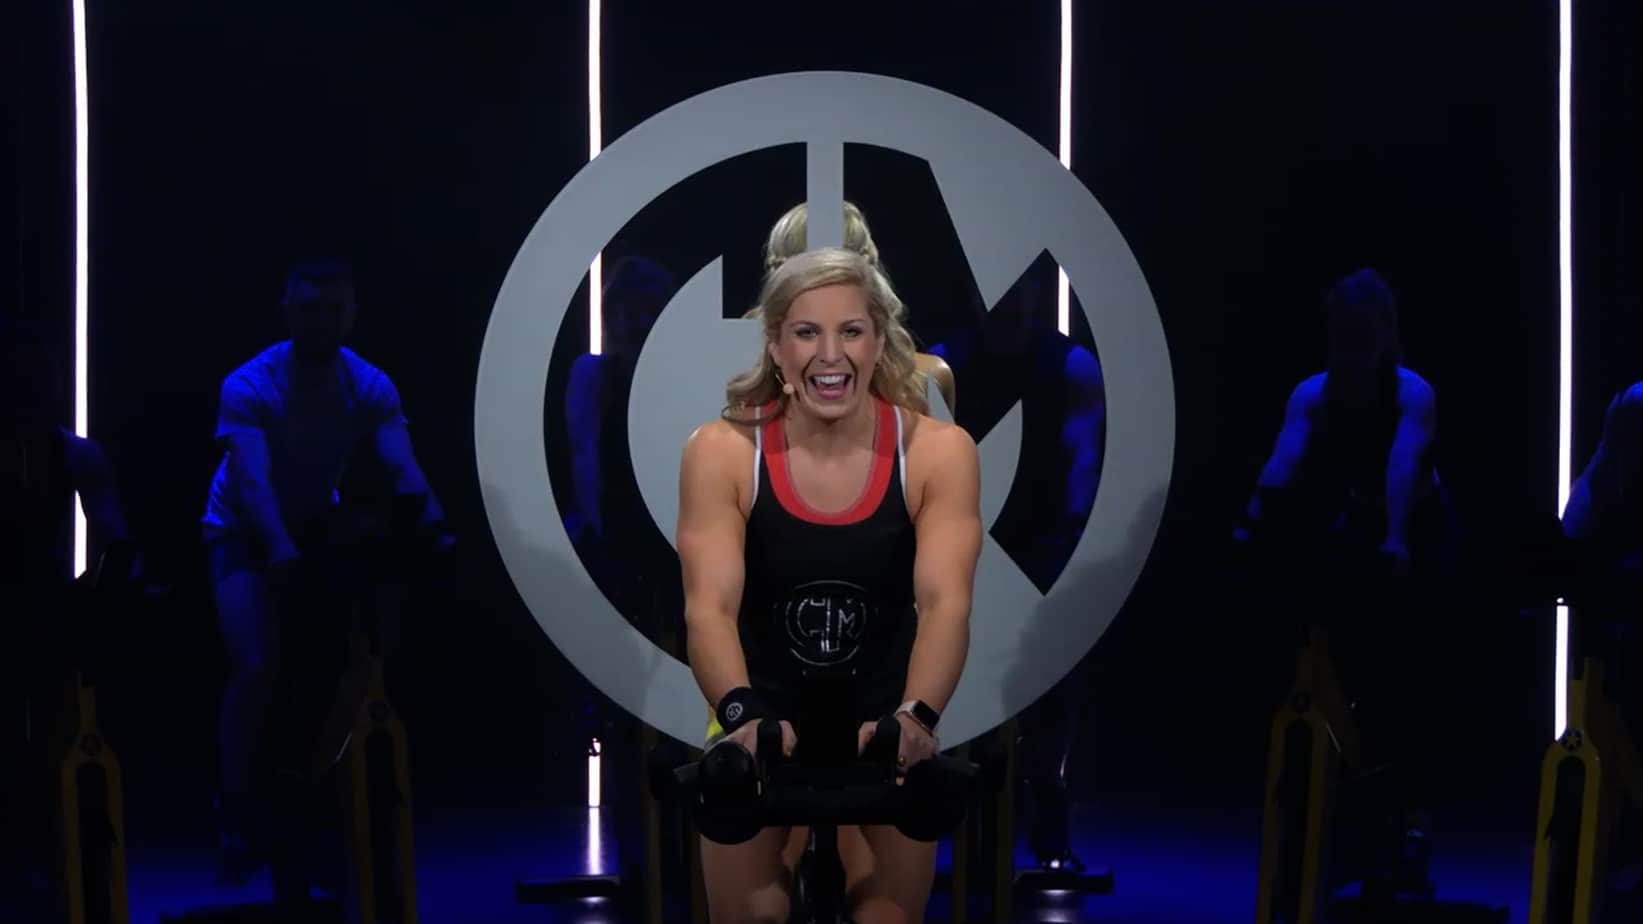 Cycling instructor Melissa Power